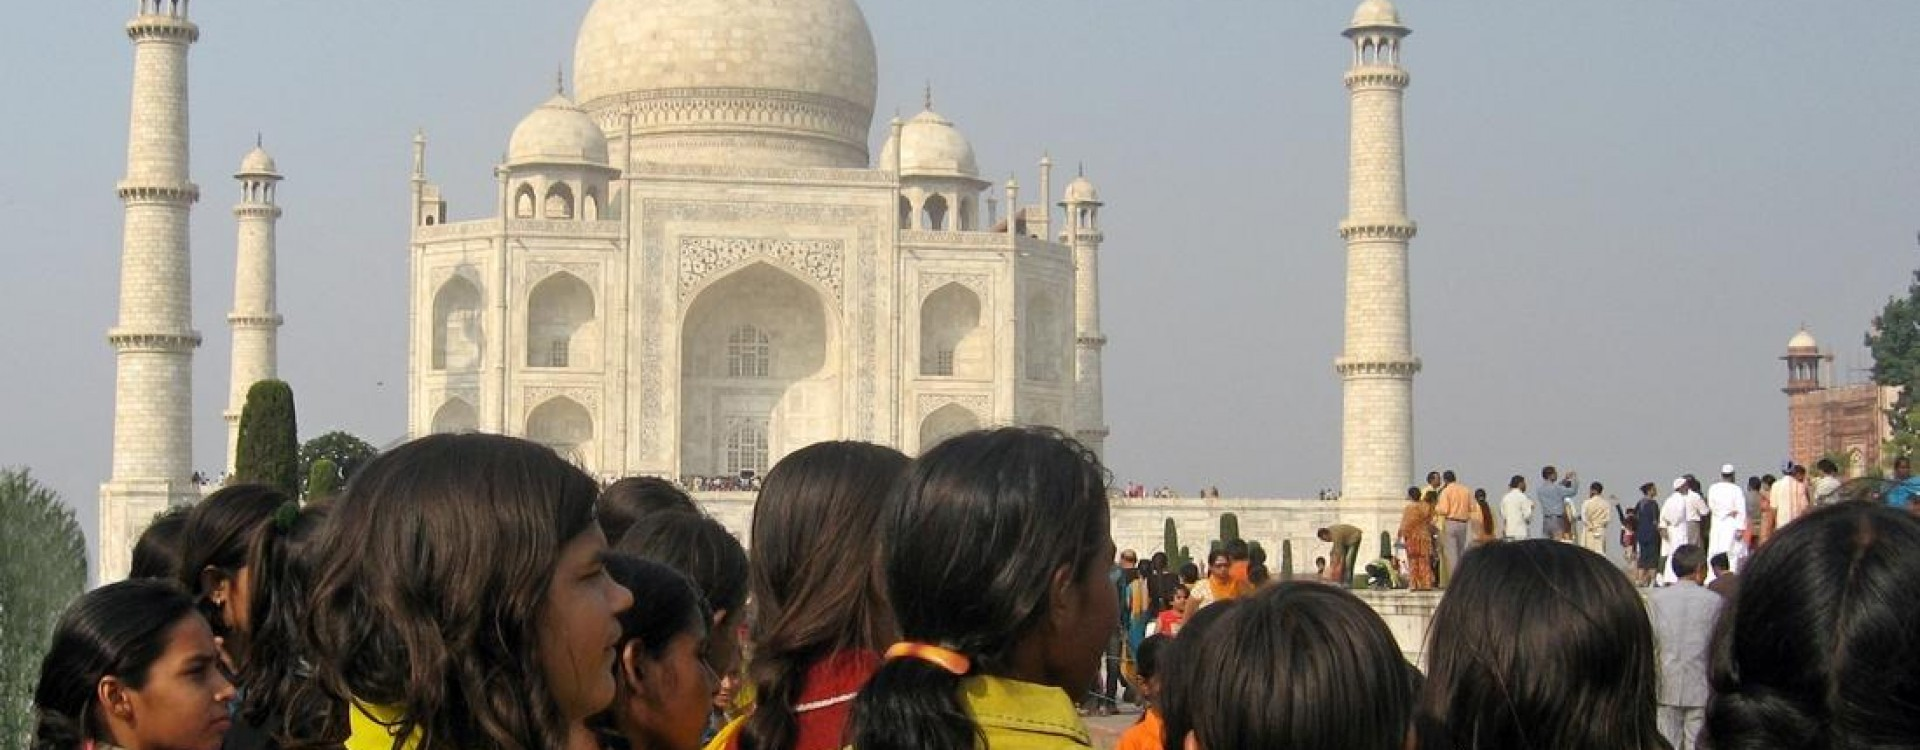 Agra and the magnificent Taj Mahal